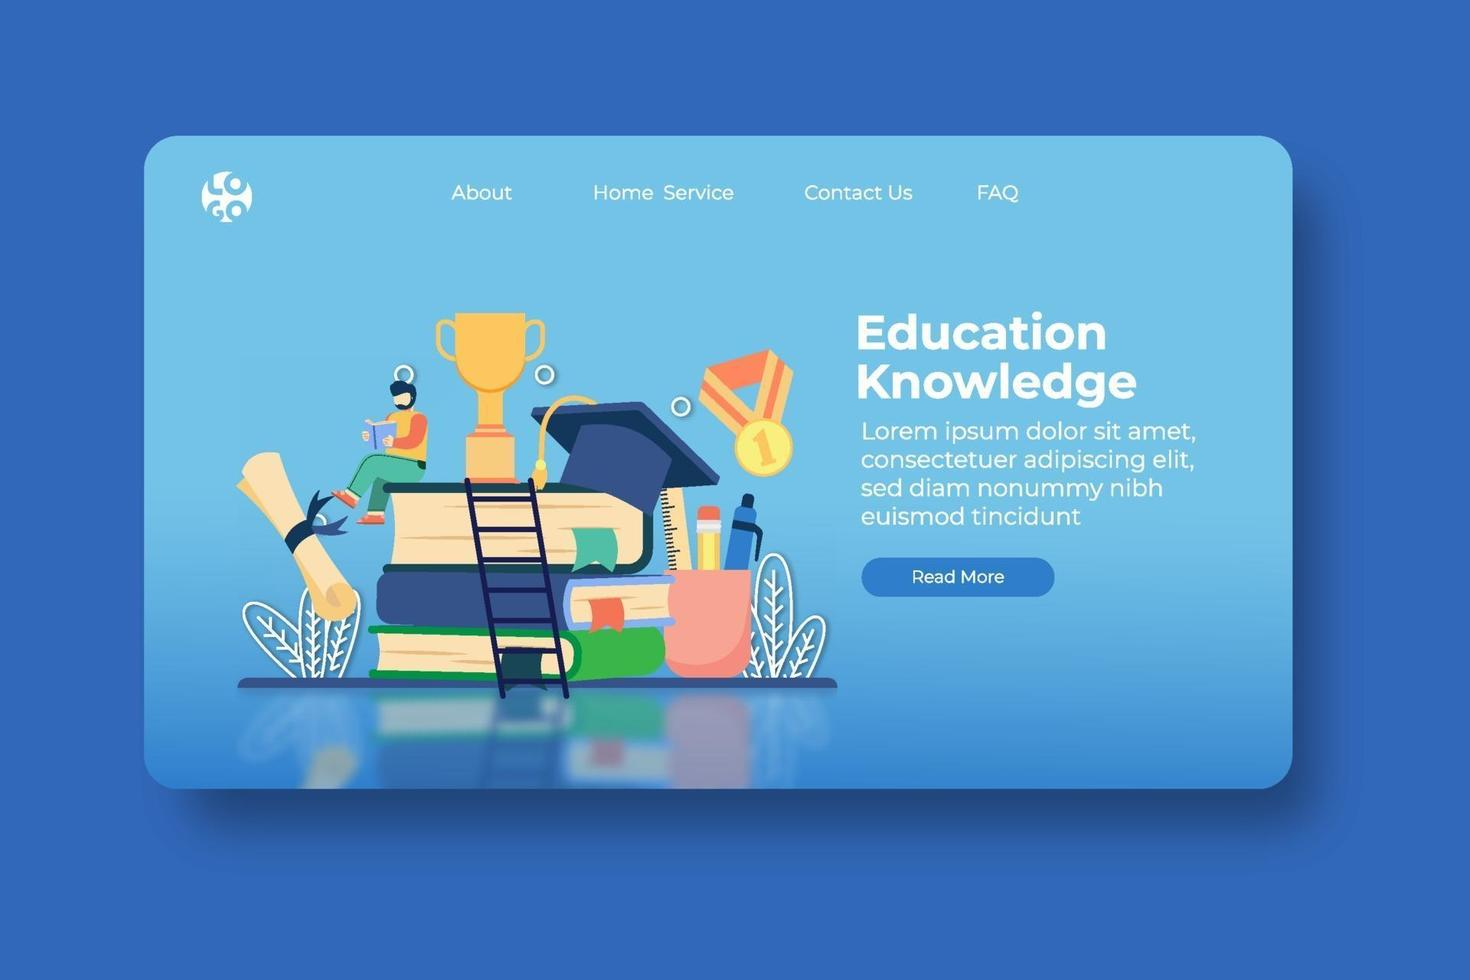 Modern Flat Design Vector Illustration. Education Knowledge Landing Page and Web Banner Template. Education, School, Learning, Educational Achievement, Academic, Distance Education, Graduation,